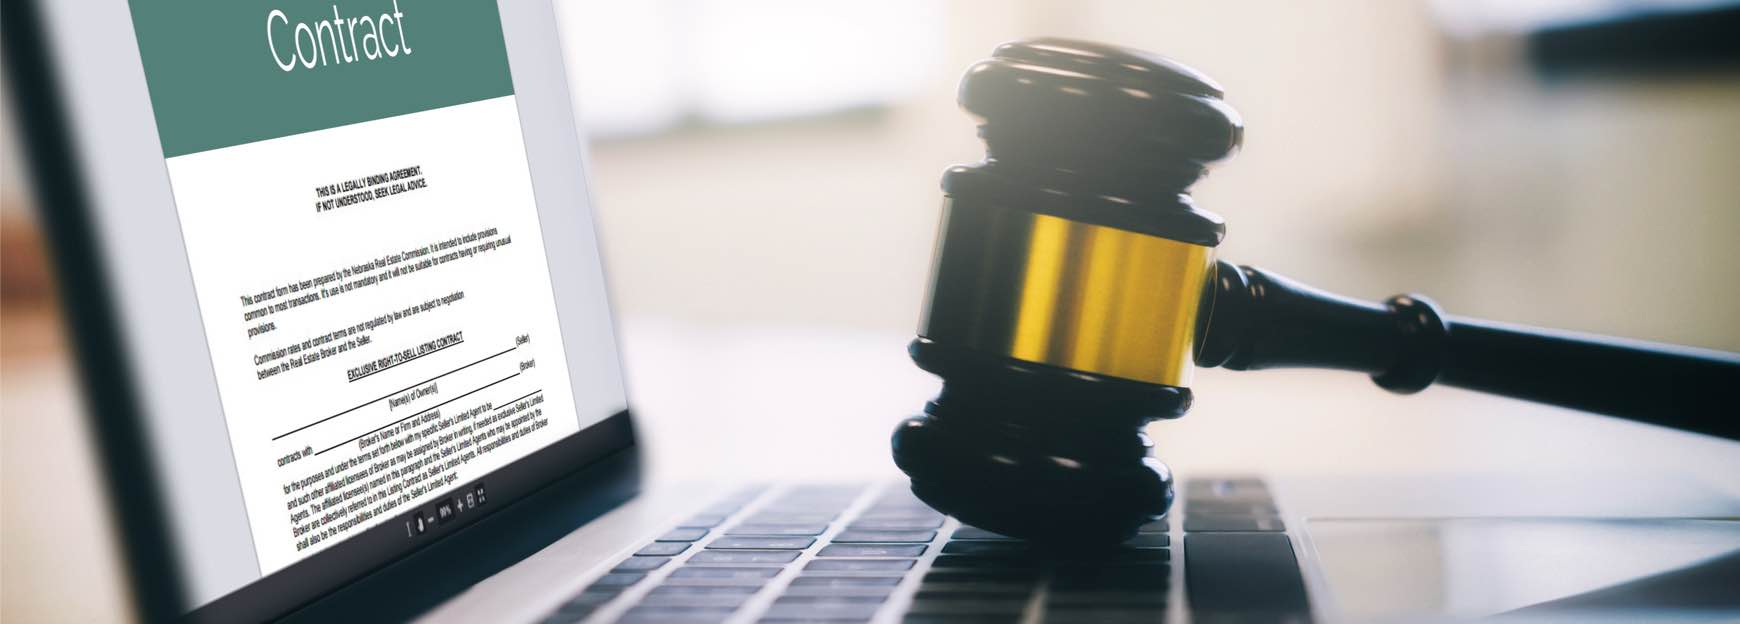 5 must have ediscovery features for legal firms